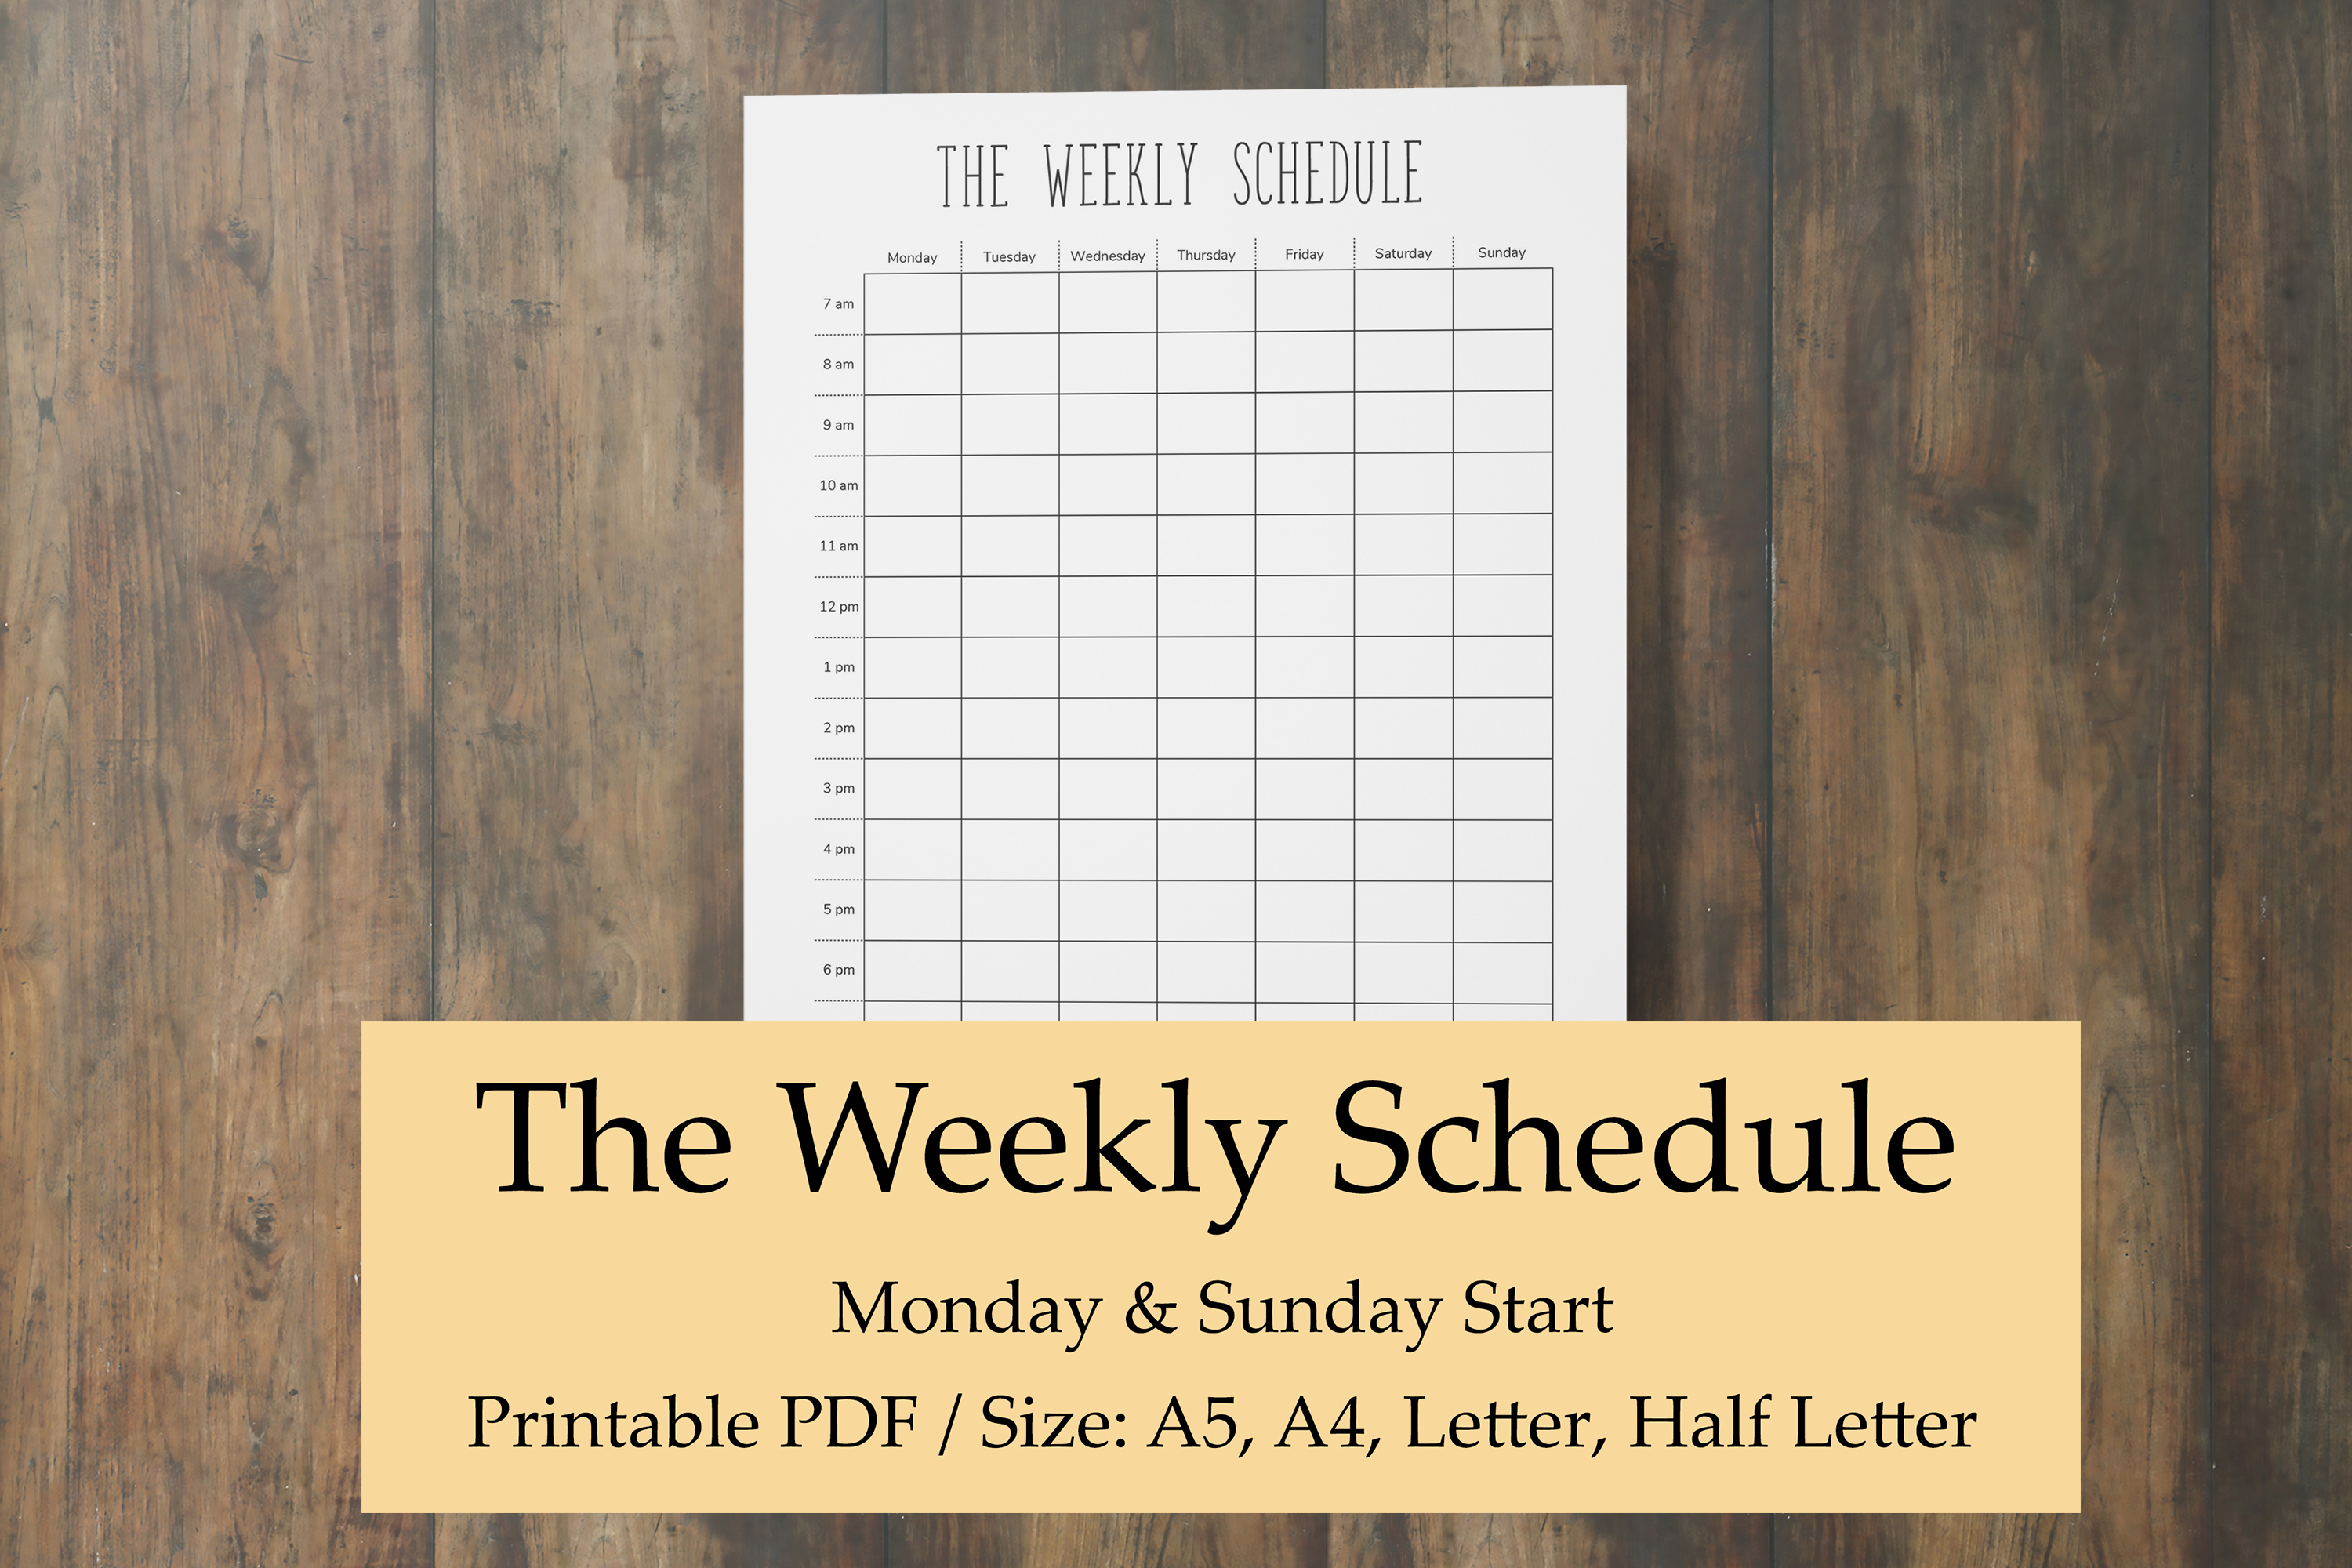 photograph regarding Weekly Hourly Planner Printable referred to as Weekly Program Printable, Hourly Planner Webpages, Weekly Year